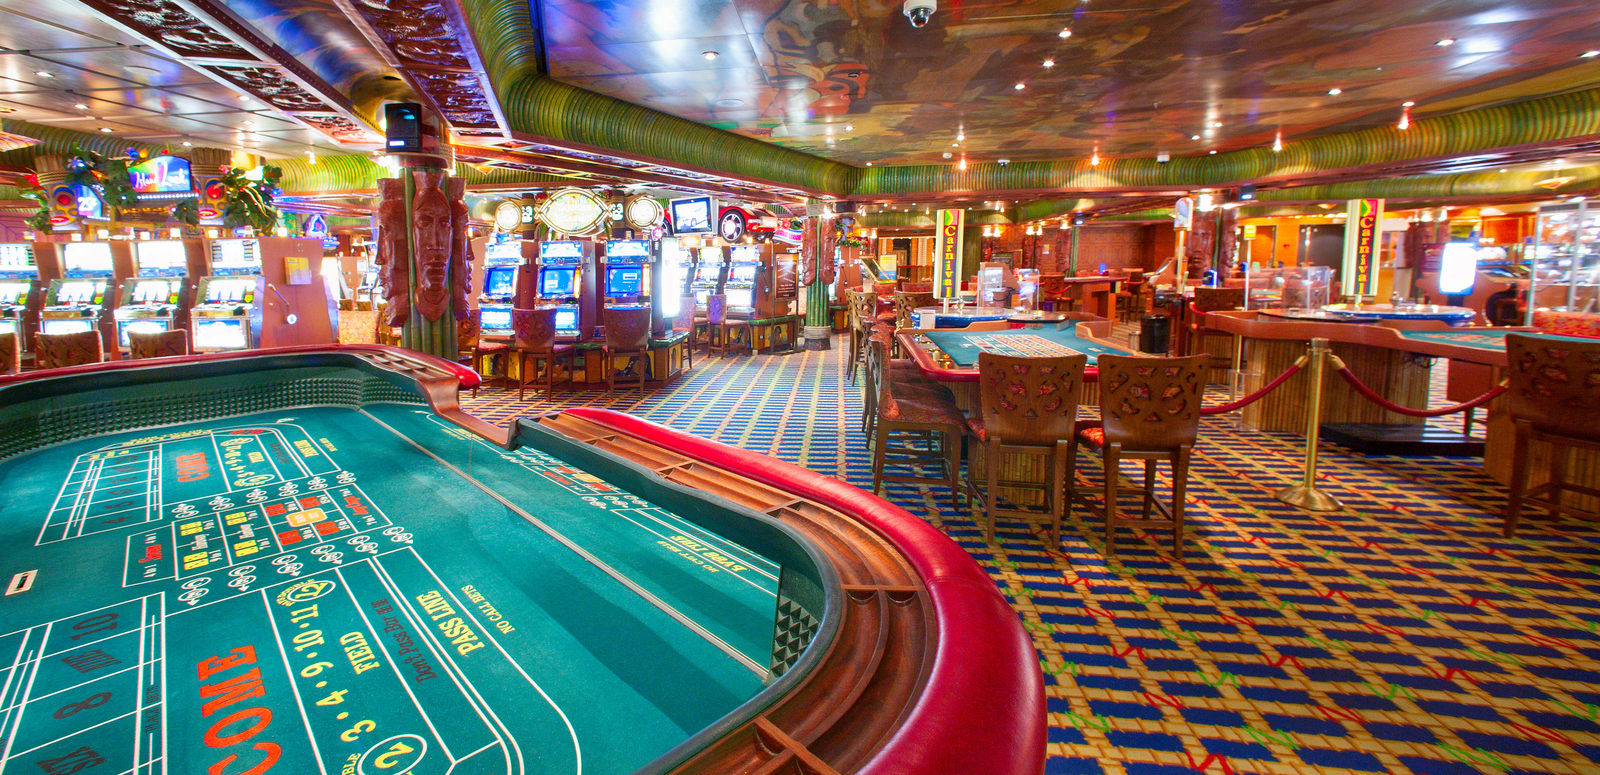 10 Best Casinos In Goa 2019 Traveler S Awards